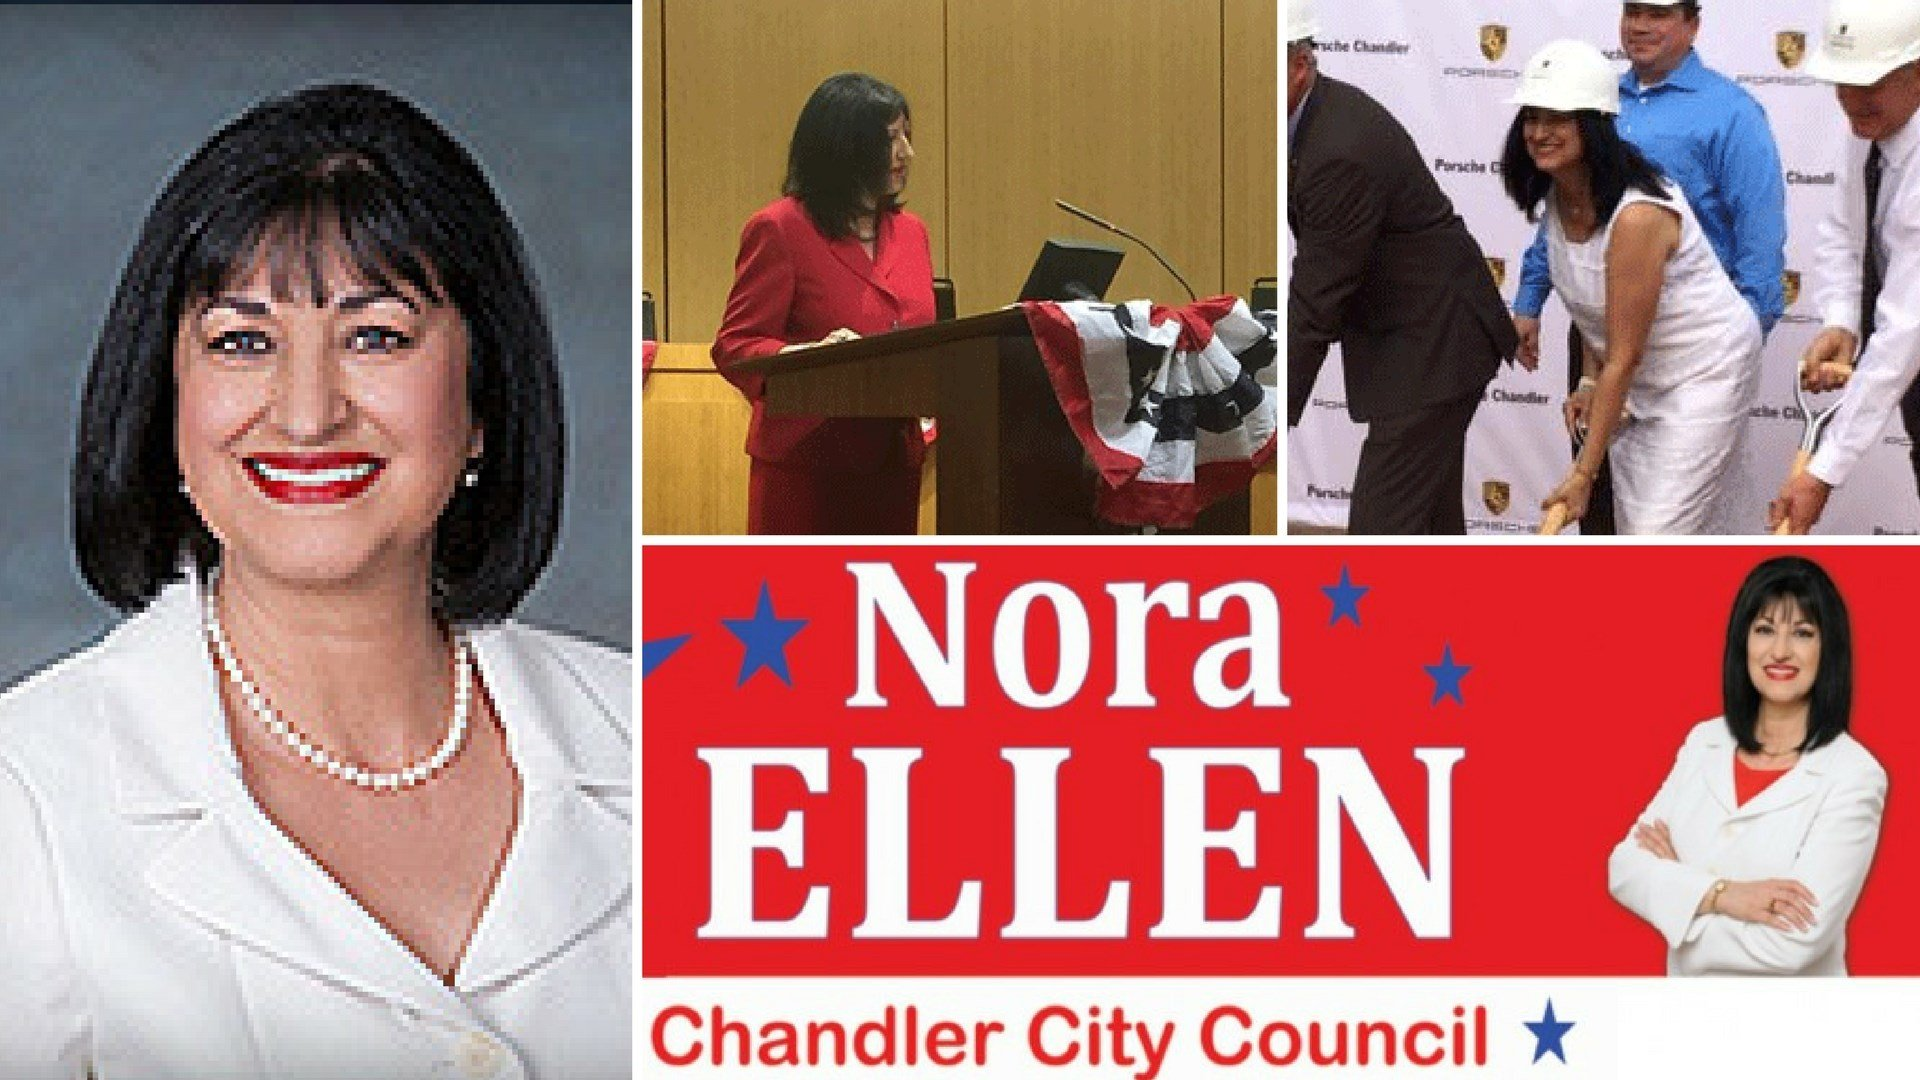 (Source: electnoraellen.com, chandleraz.gov)